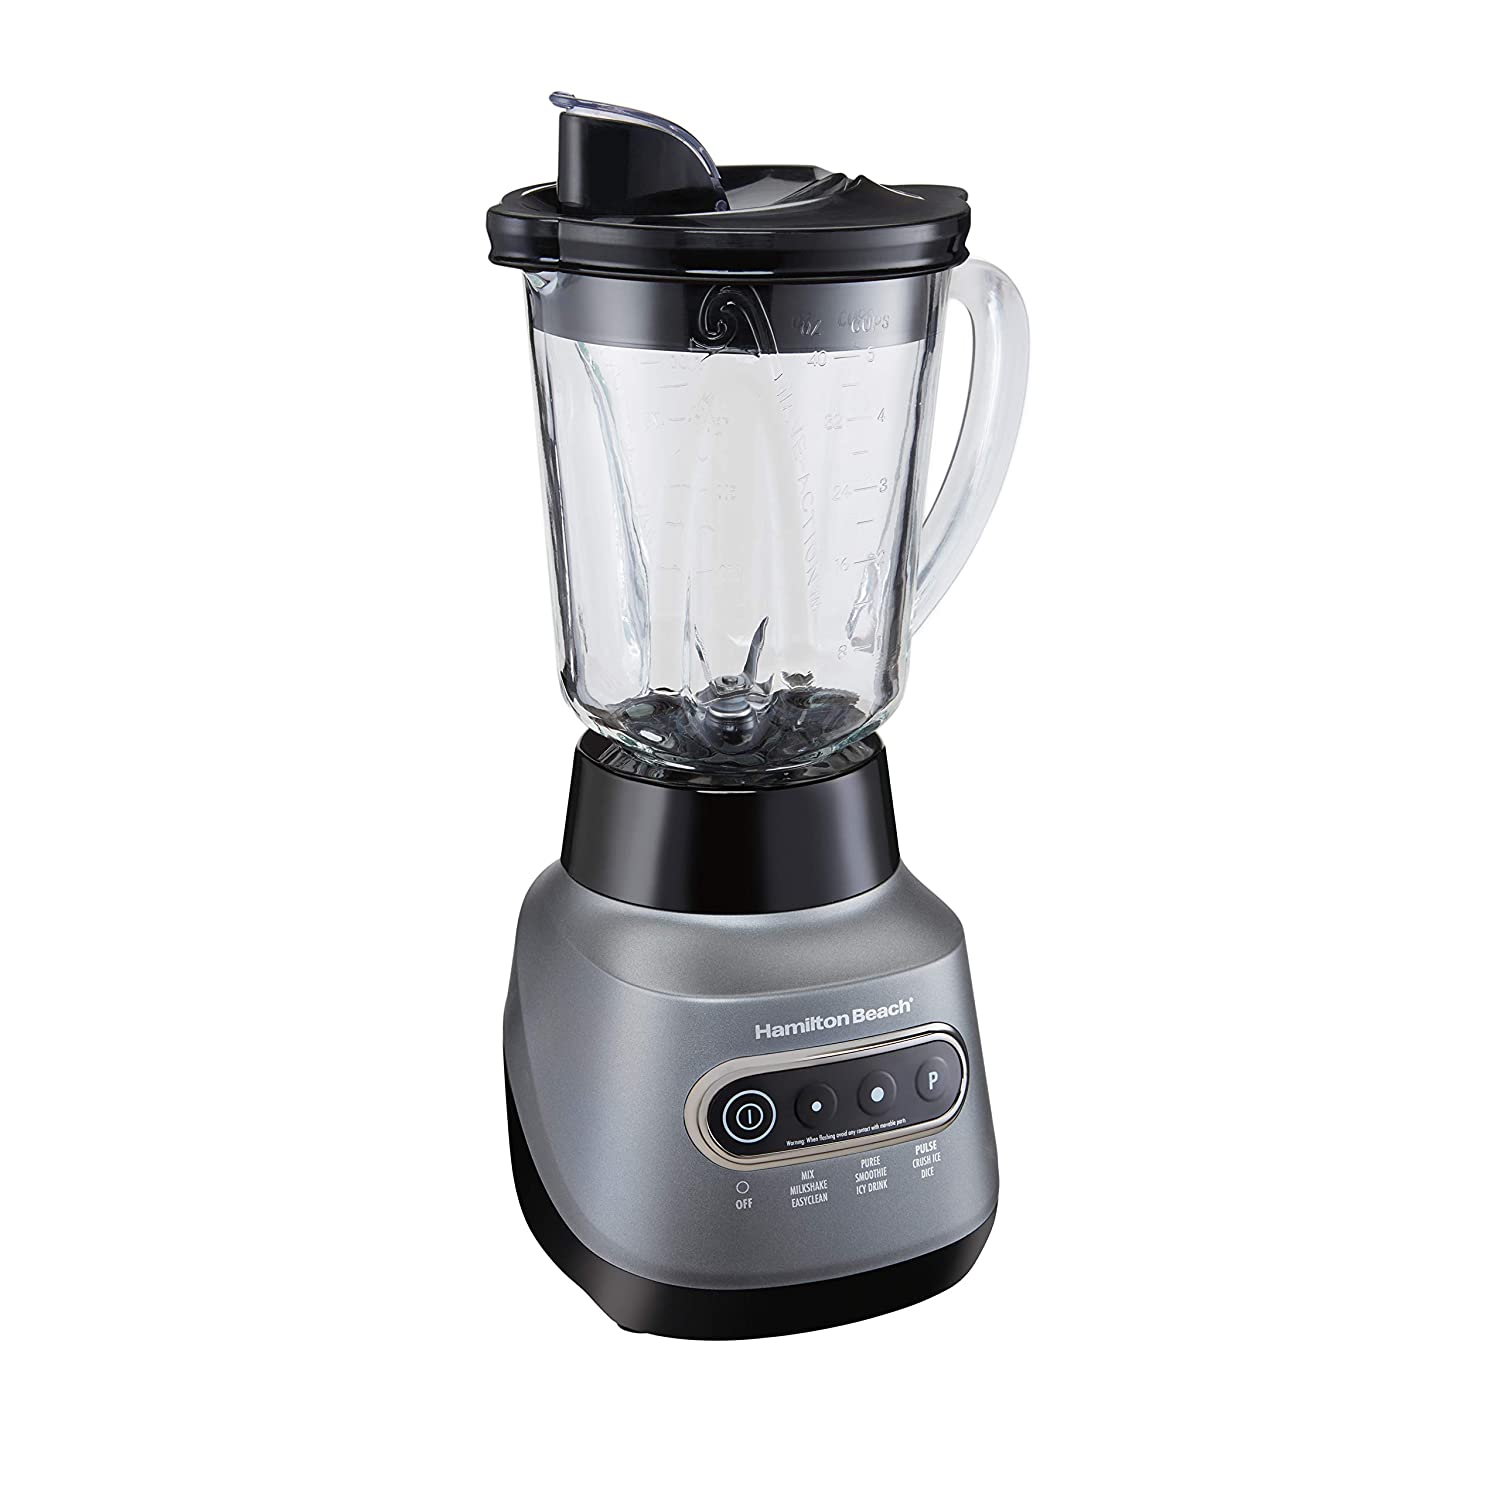 Hamilton Beach 58181 Wave Crusher Electric Blender with 6 Functions, Quieter Blending, Ice-Crushing Stainless Steel Blades, 800 Watts, 3-Year Warranty, 40 oz Glass Jar, 20 oz Personal Jar, Silver